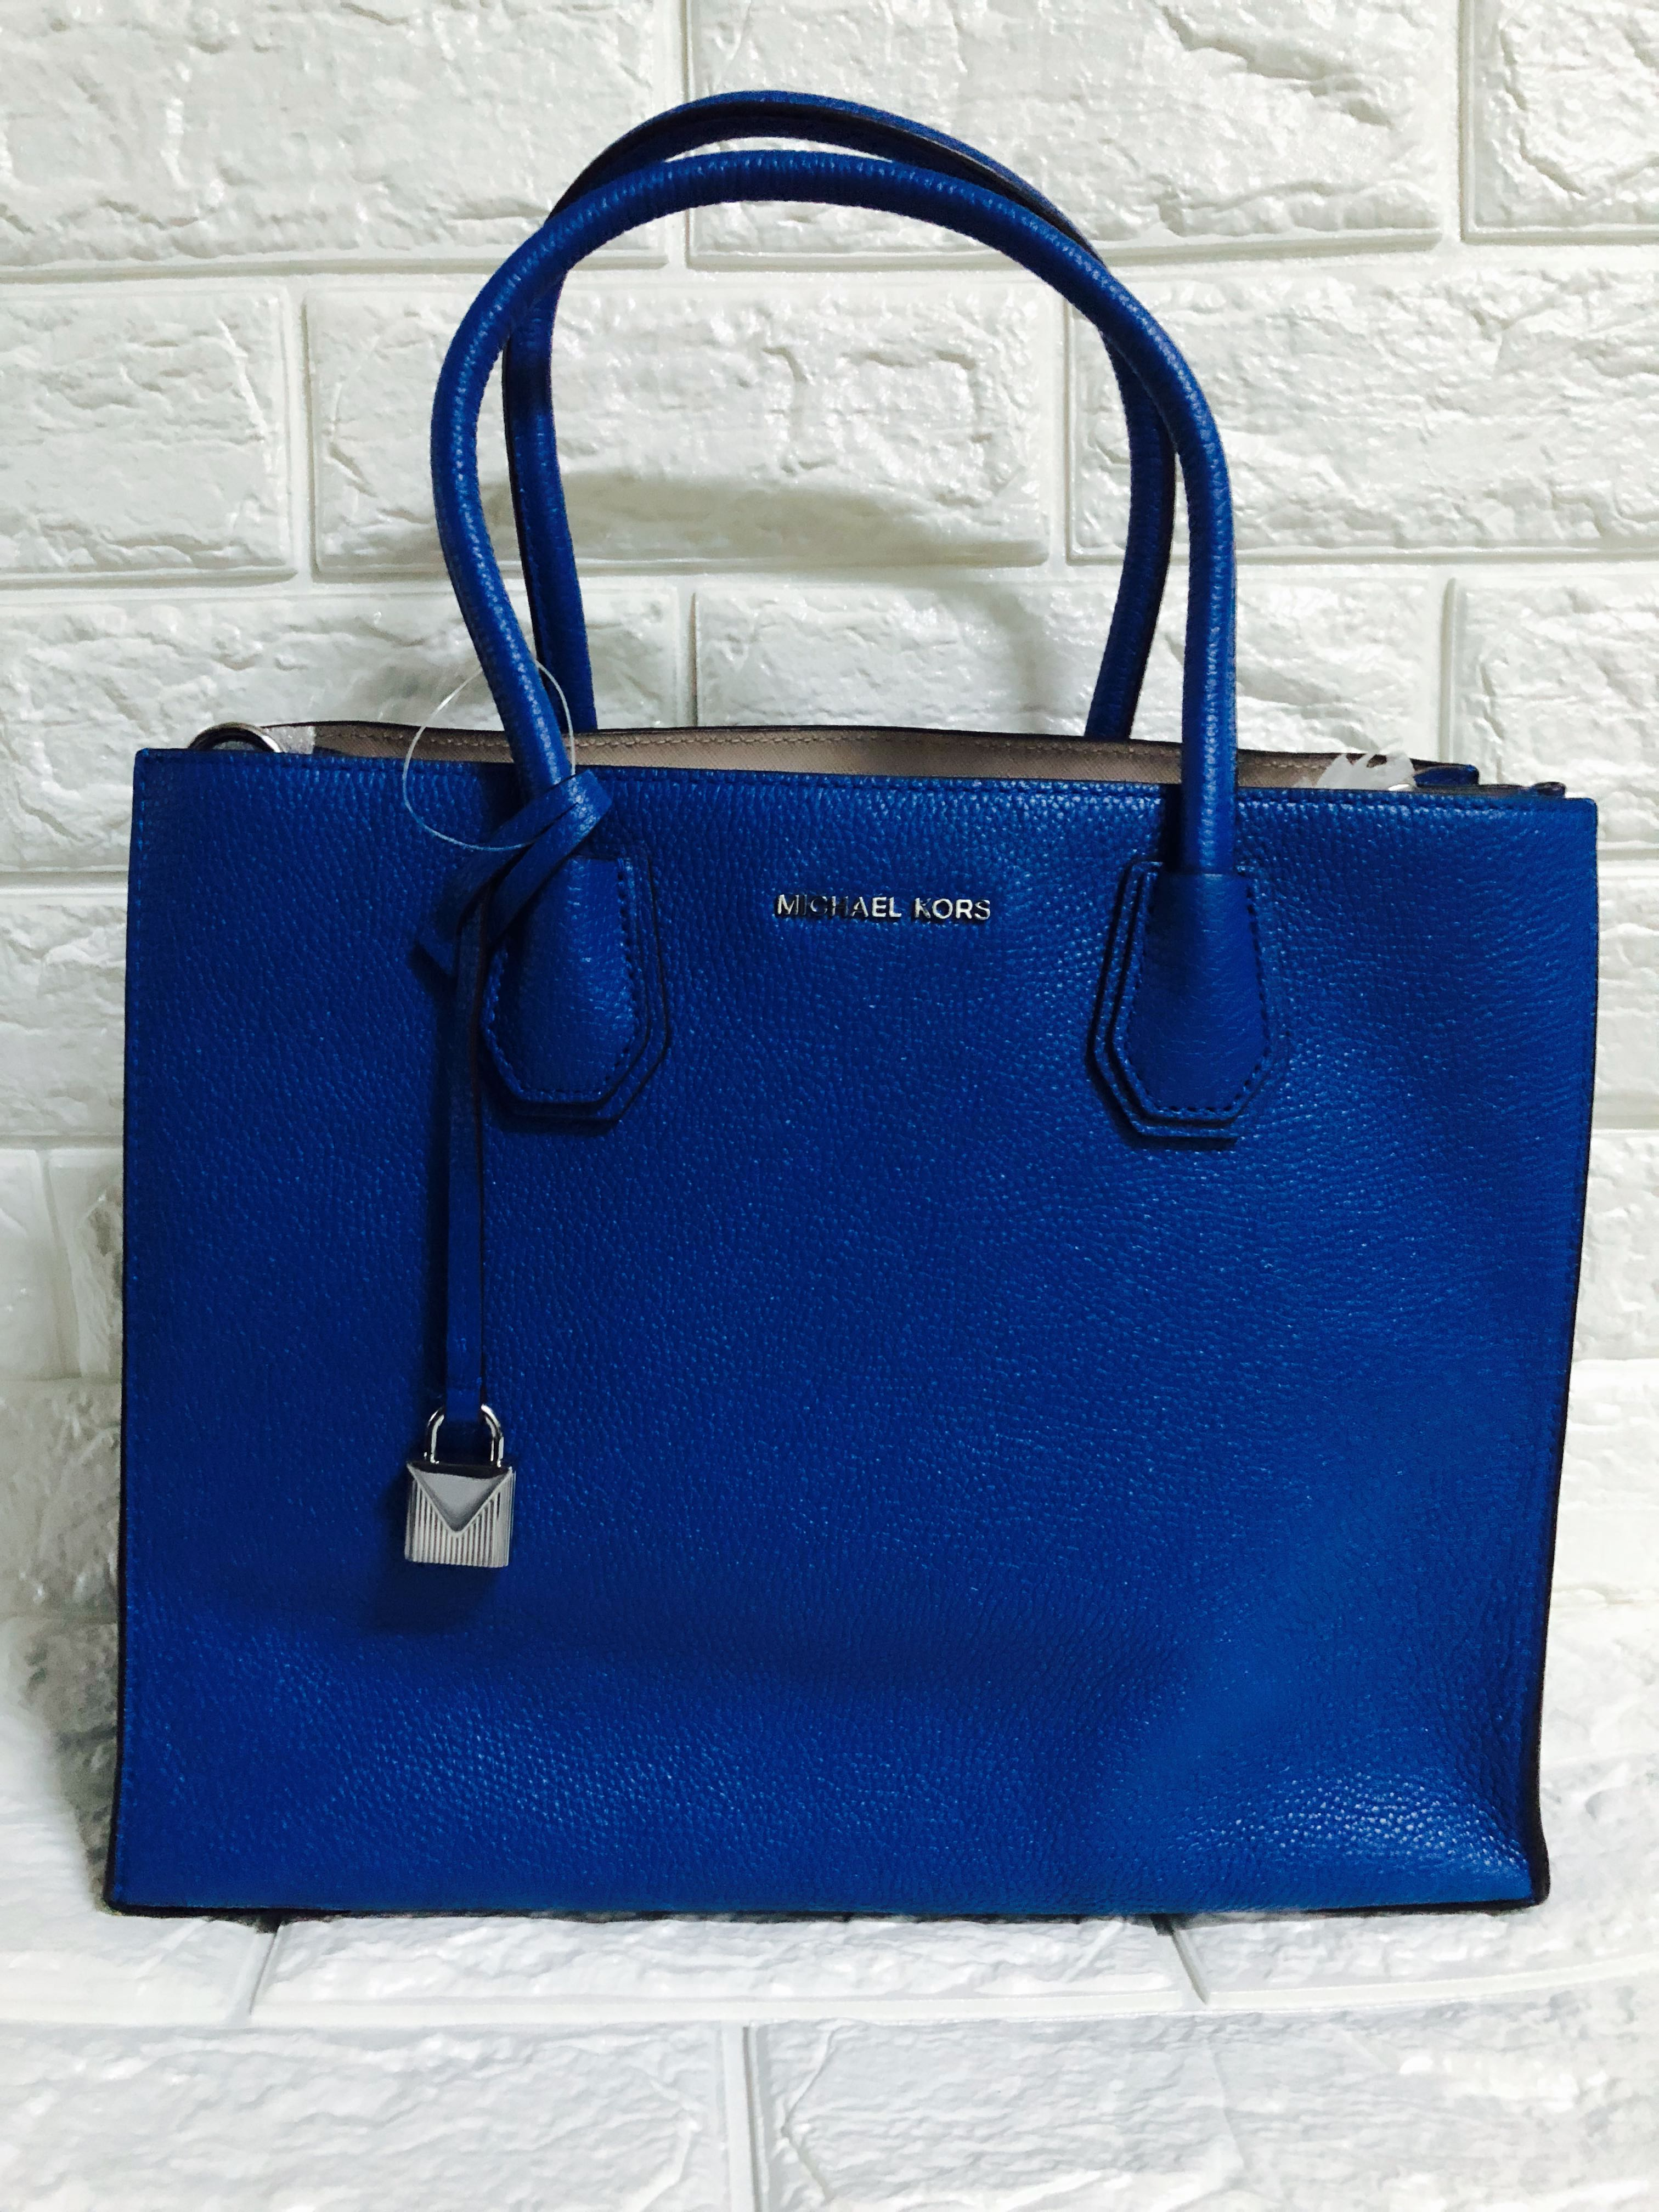 9643eb33f5b32 Michael Kors Mercer Large Leather Tote, Luxury, Bags & Wallets on ...